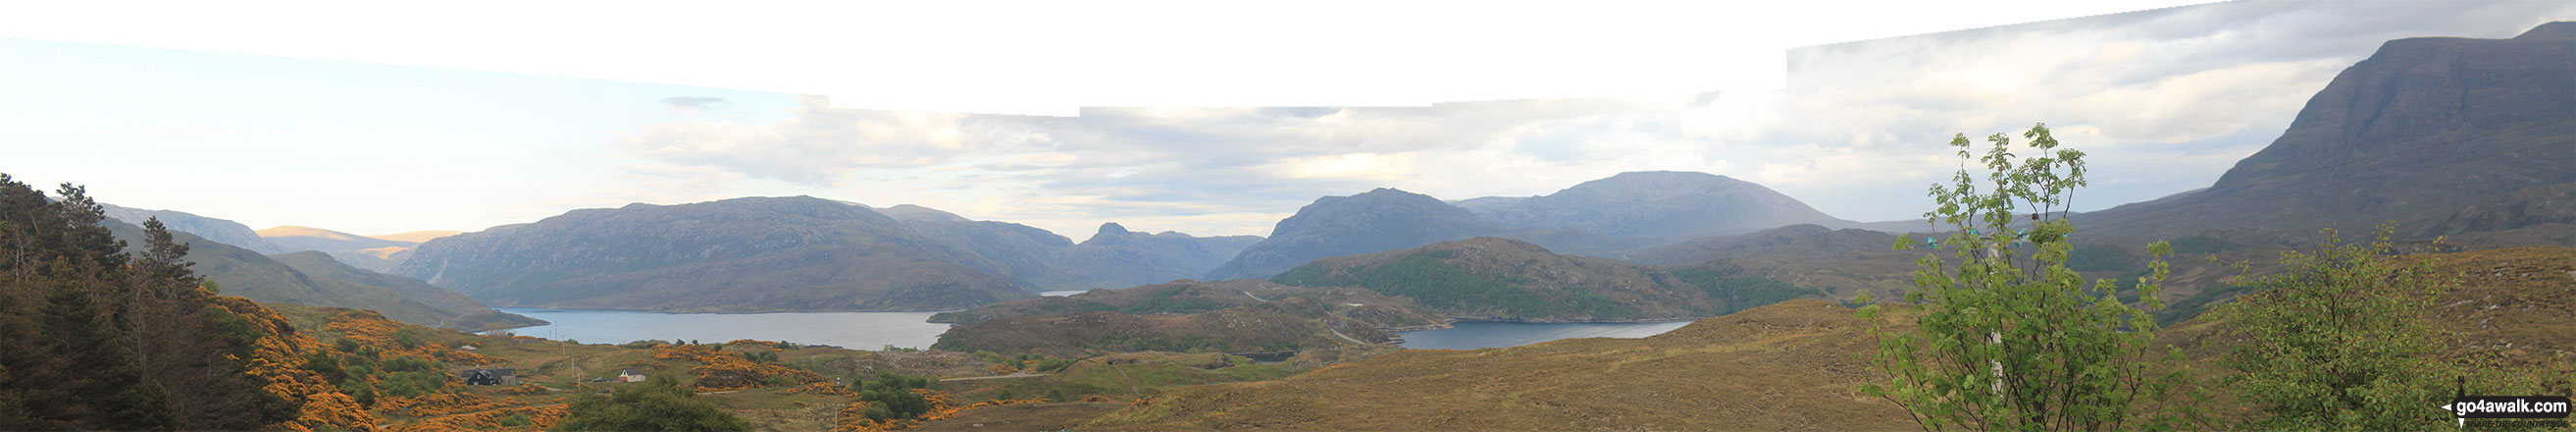 Panoroama featuring Glas Bheinn (Ben More Assynt) and the shoulder of Spidean Coinich (Quinag) from the Assynt viewpoint on the A838 (North Coast NC500 route) at Bealach Strome